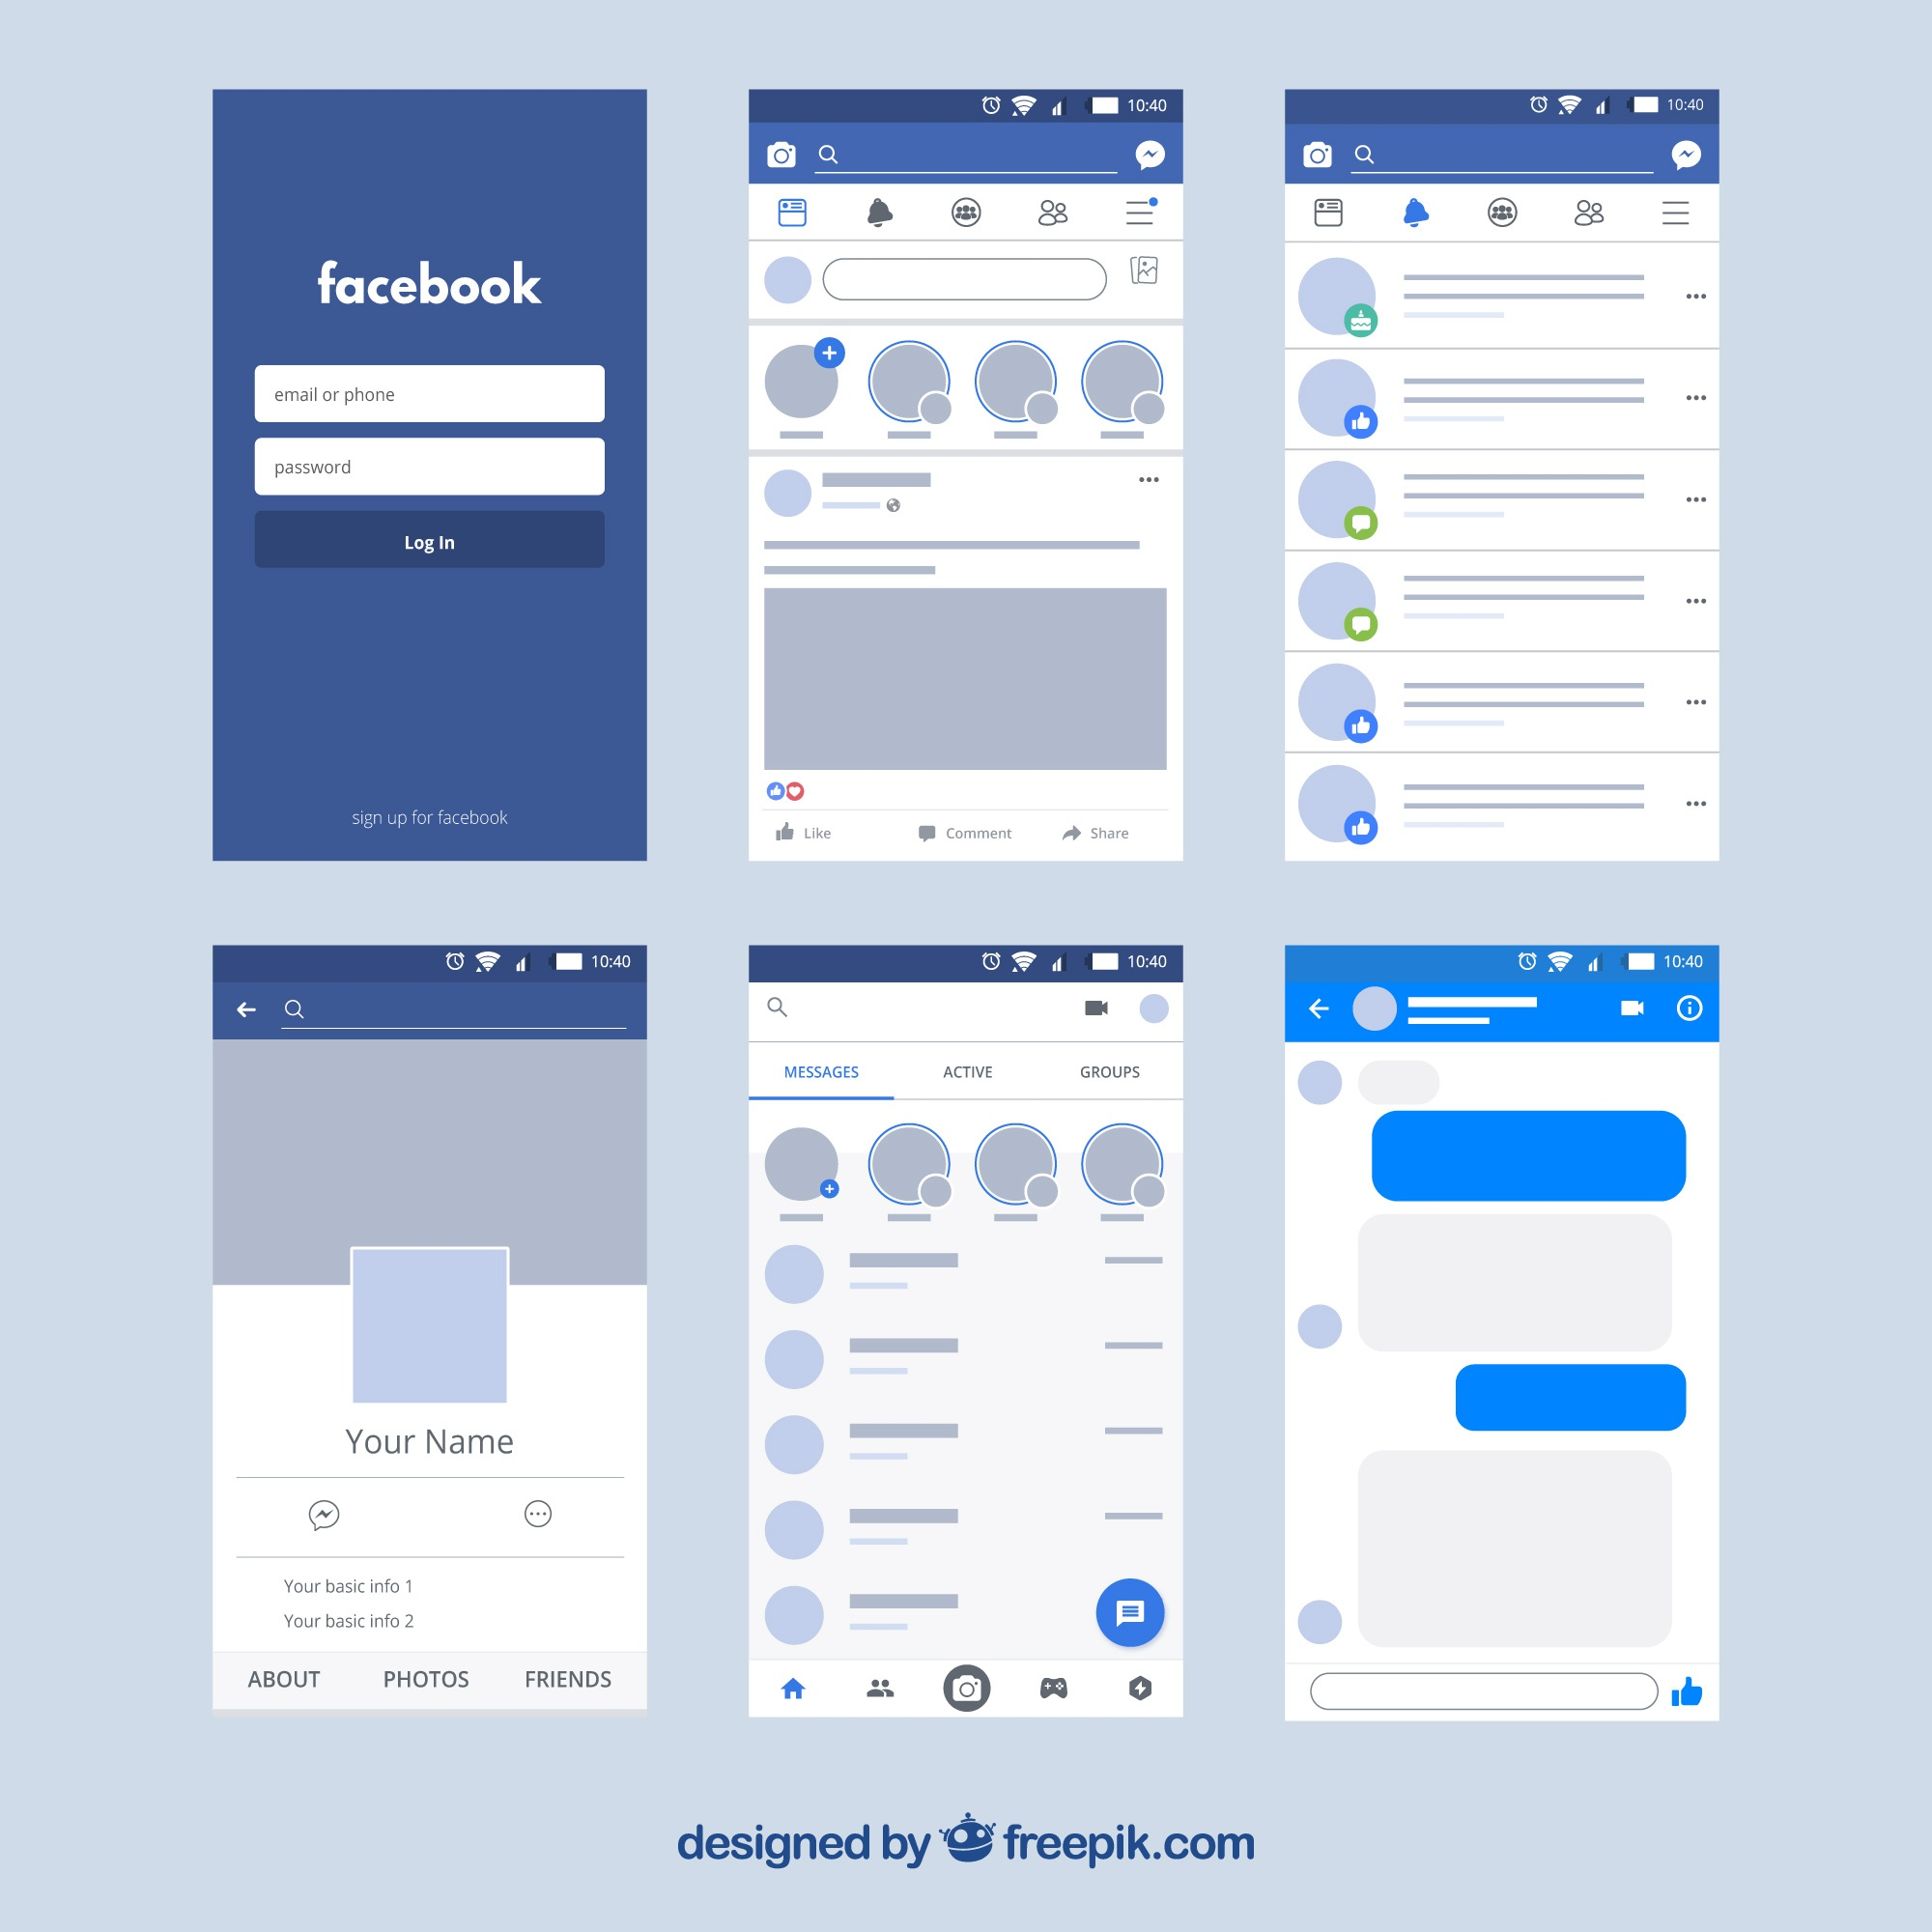 Interface de aplicativo do Facebook com design minimalista